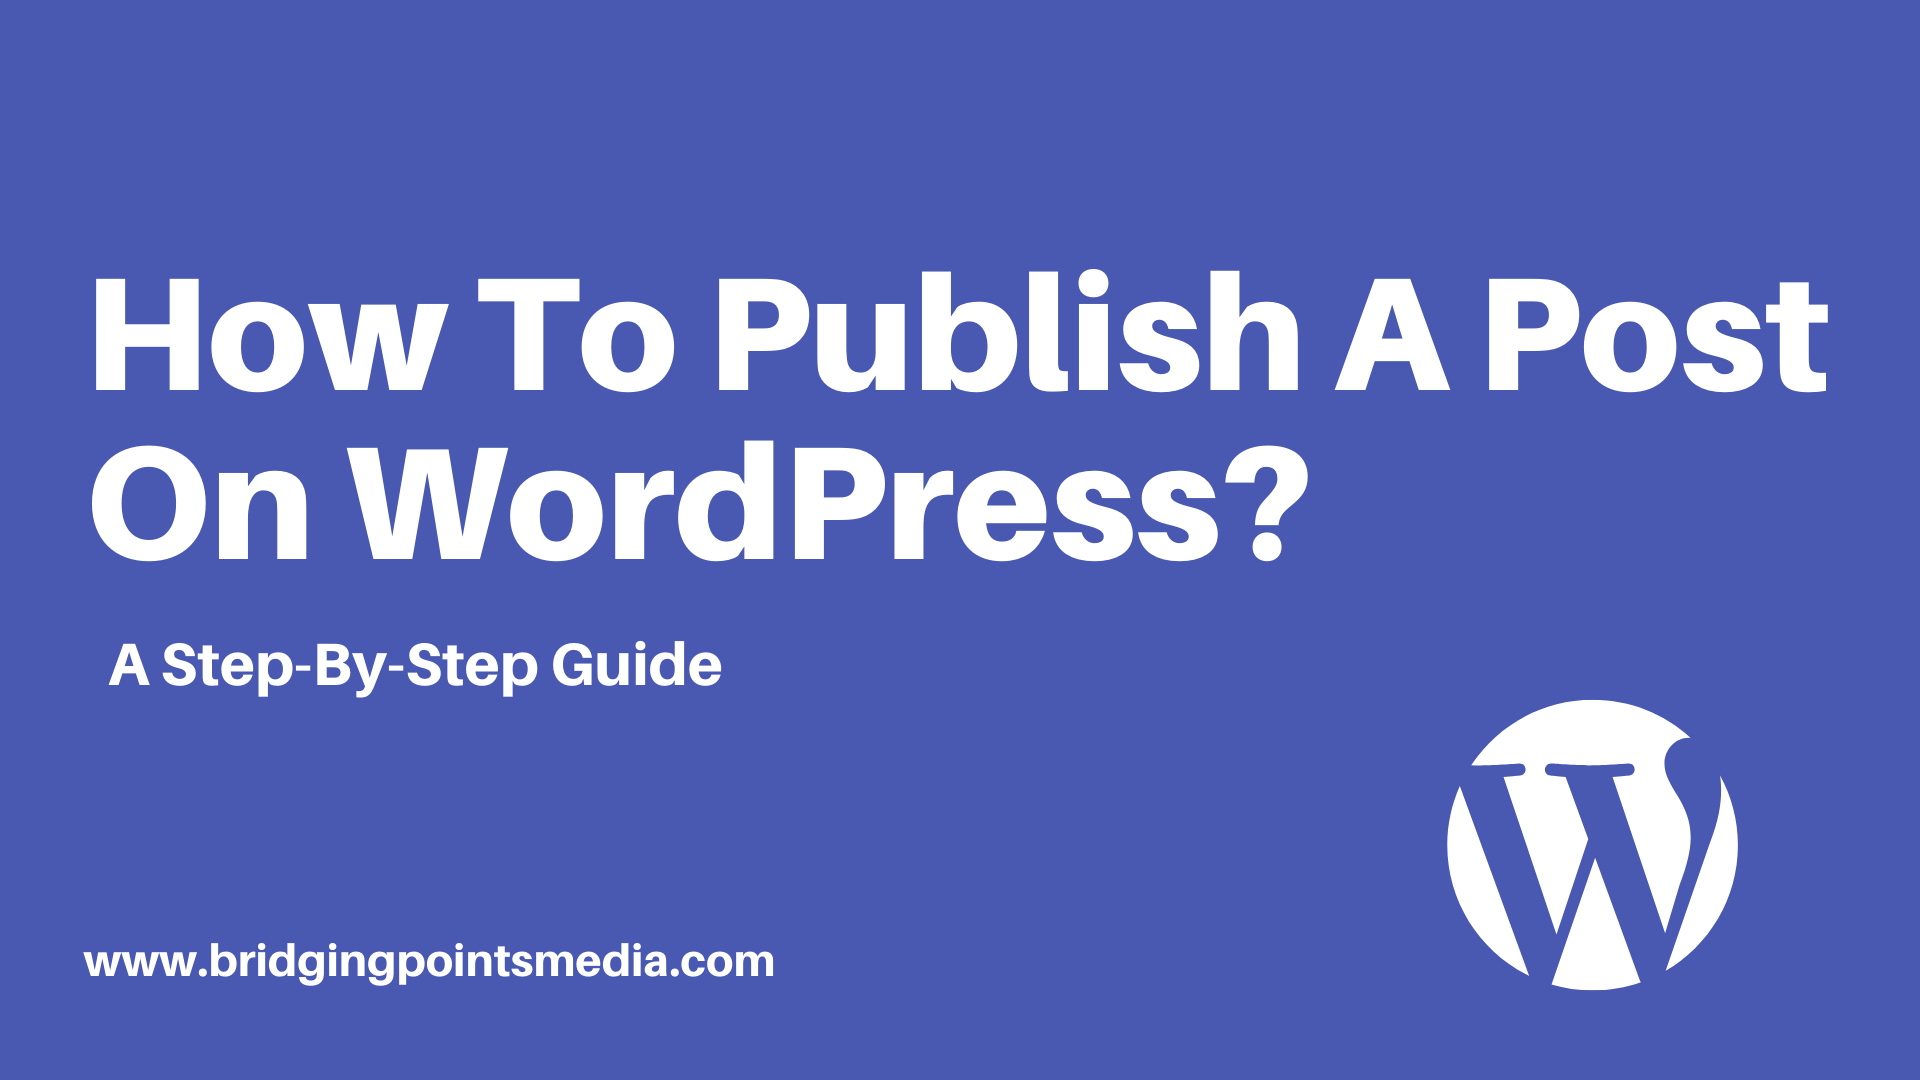 How To Publish A Post On WordPress